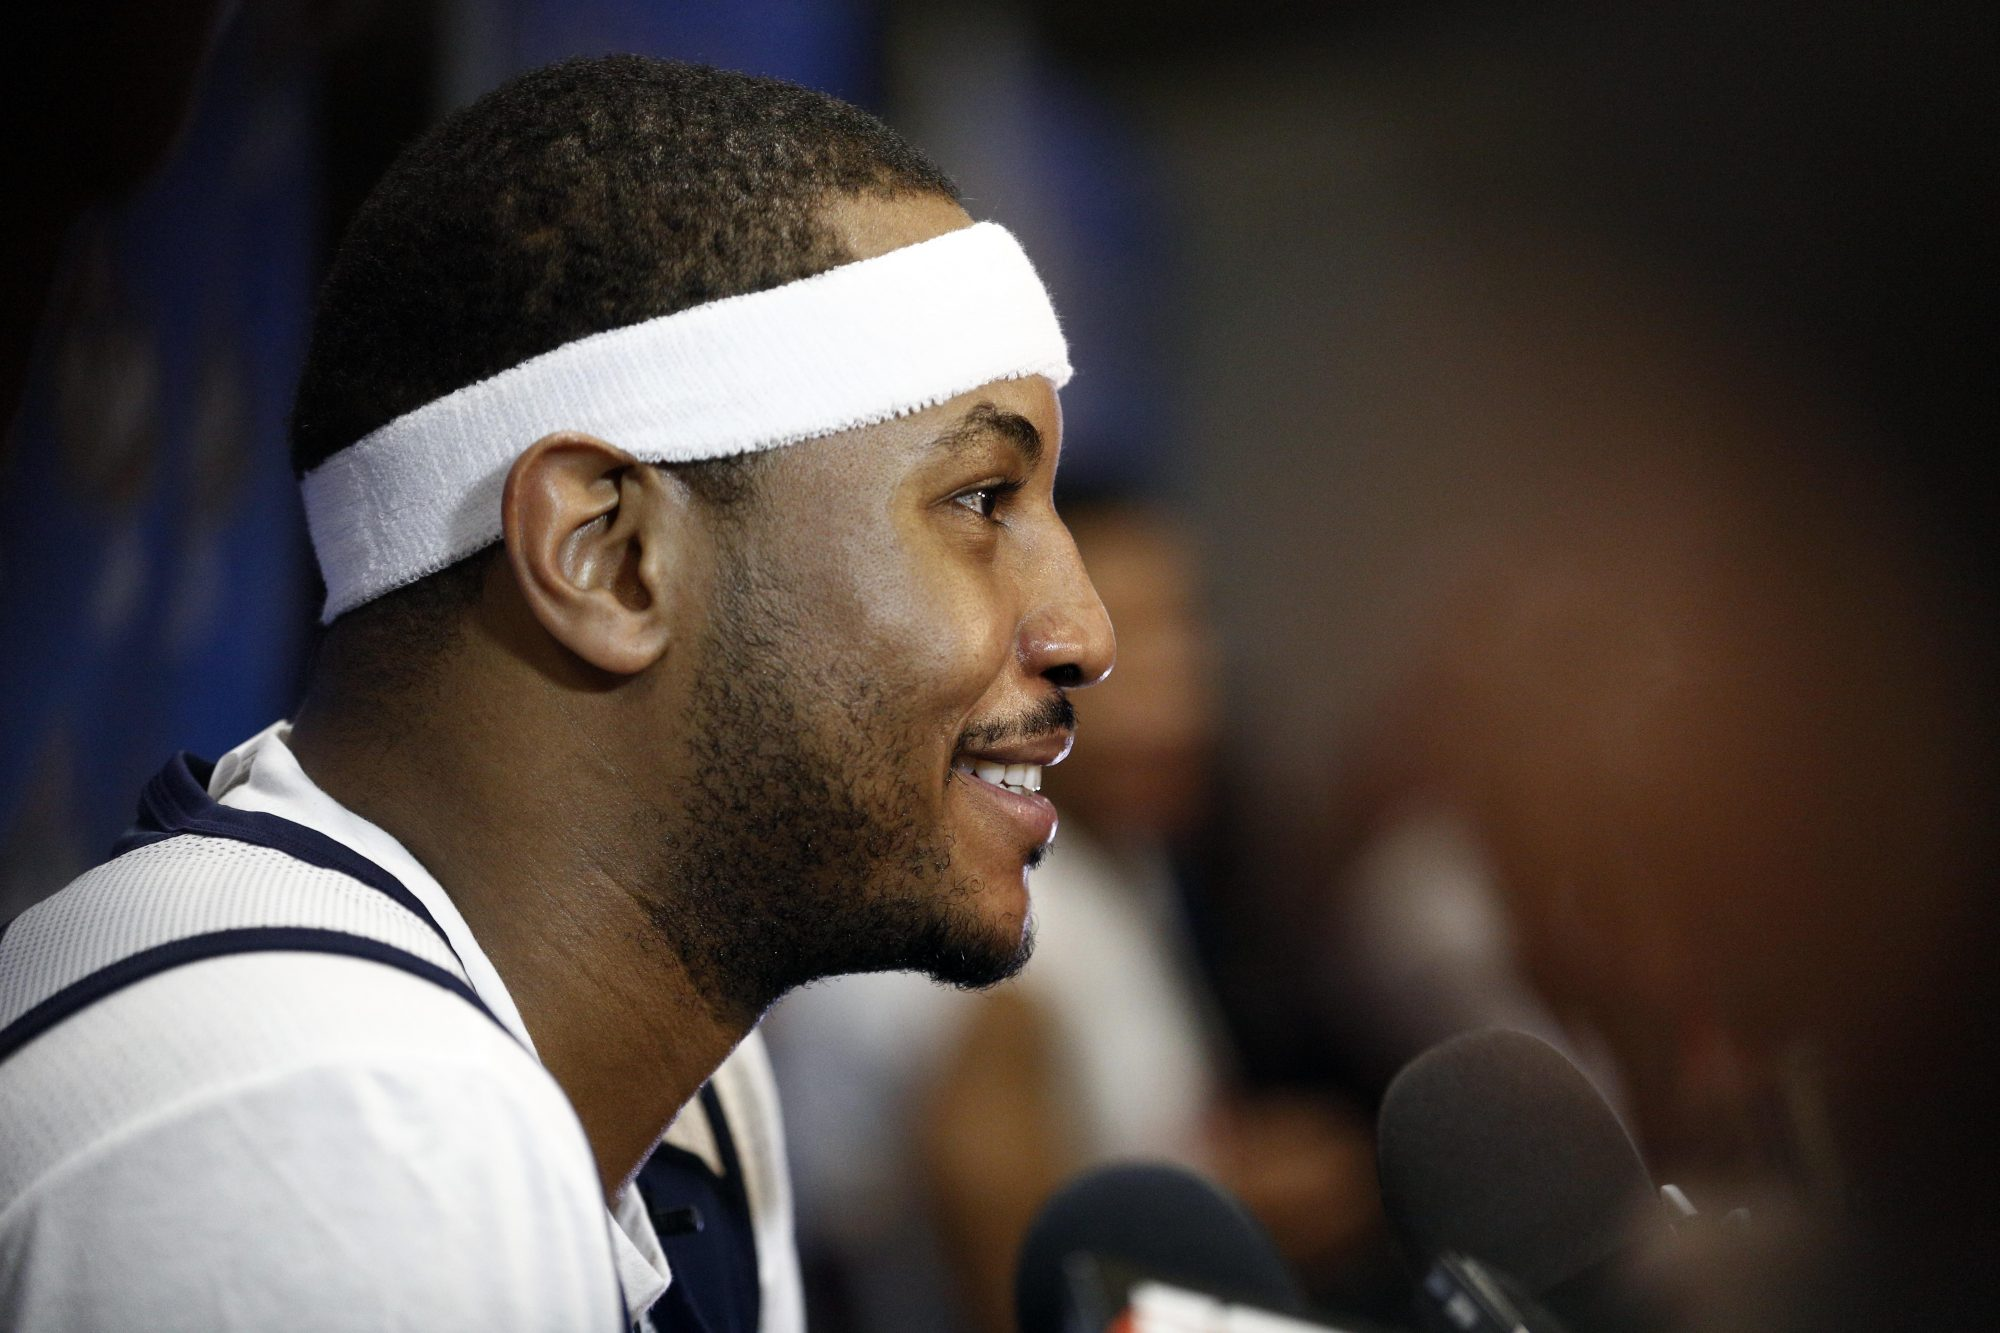 Carmelo Anthony intends to stay with the New York Knicks (Report)